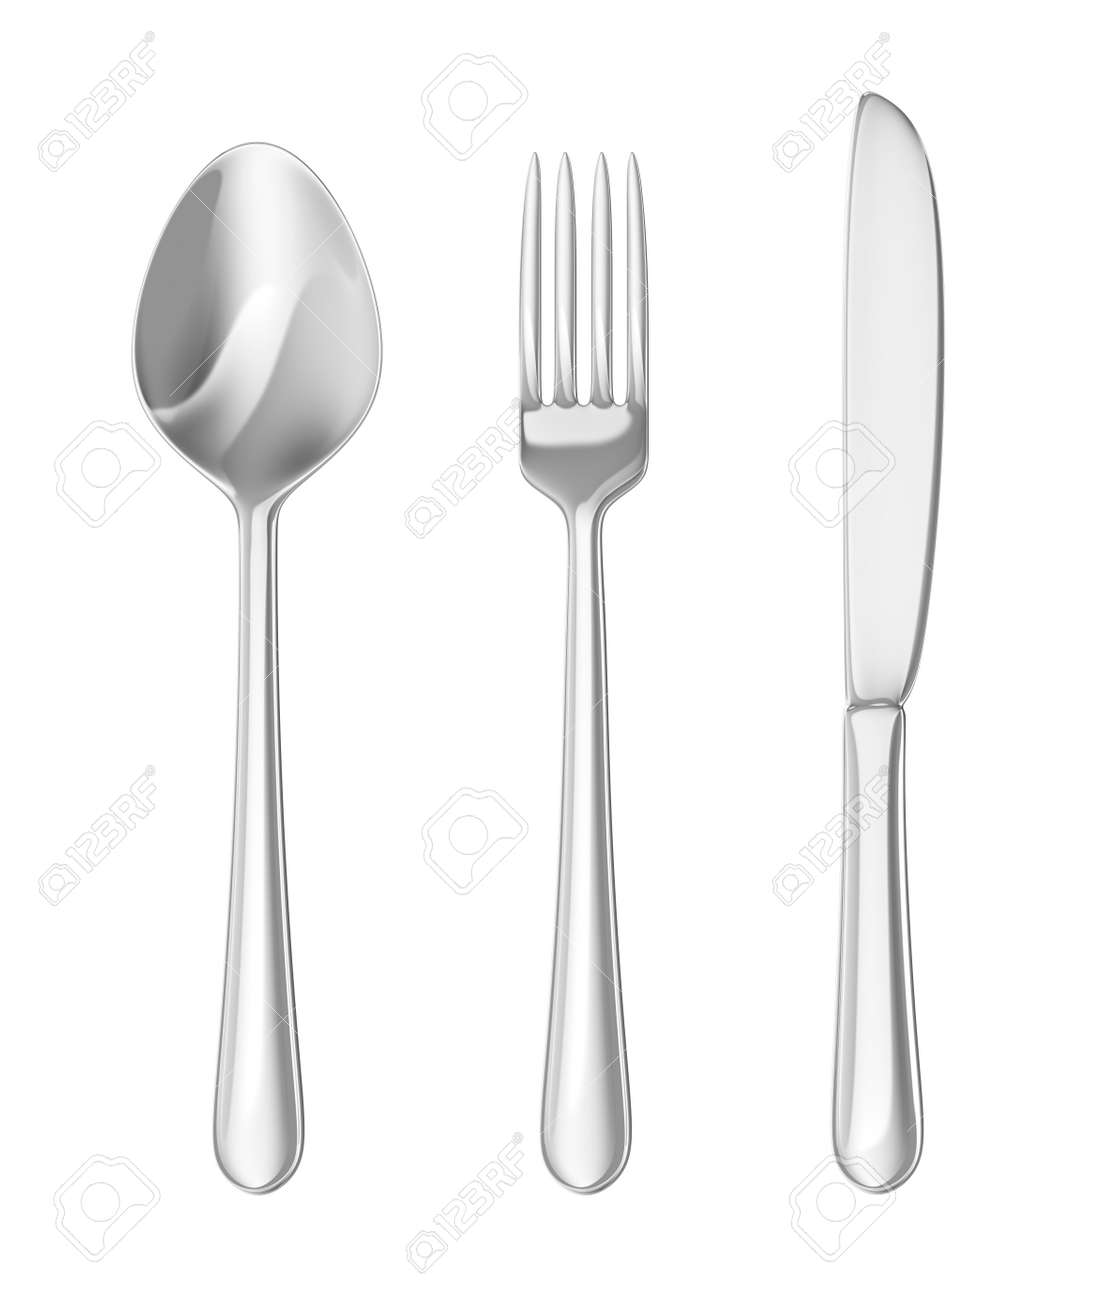 Cutlery Set Spoon Fork Knife Stock Photo Picture And Royalty Free